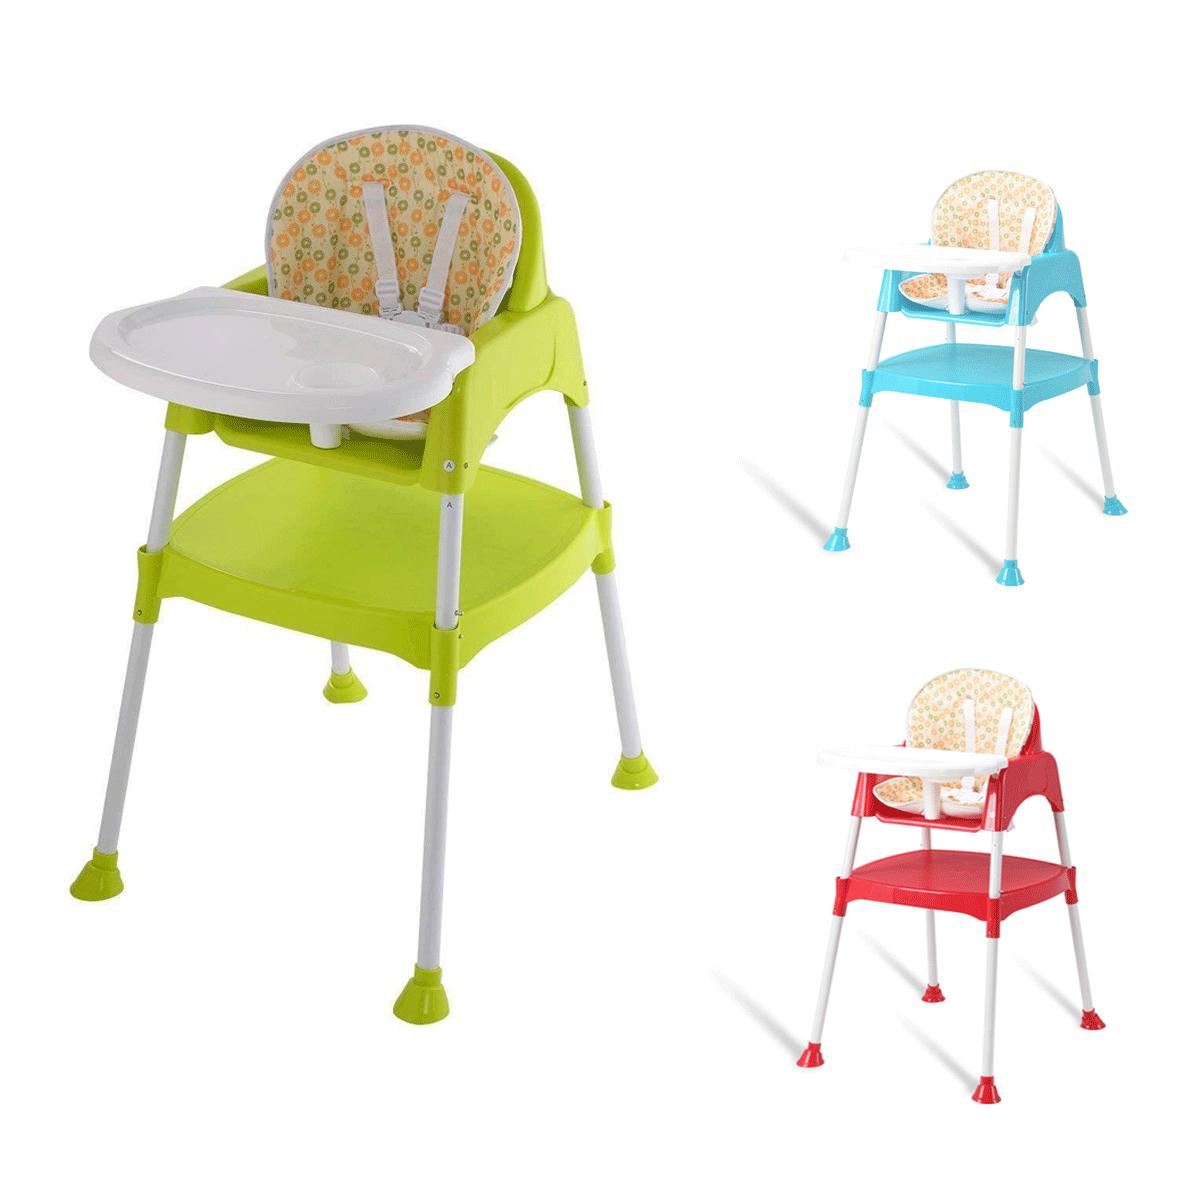 3 in 1 baby high chair convertible